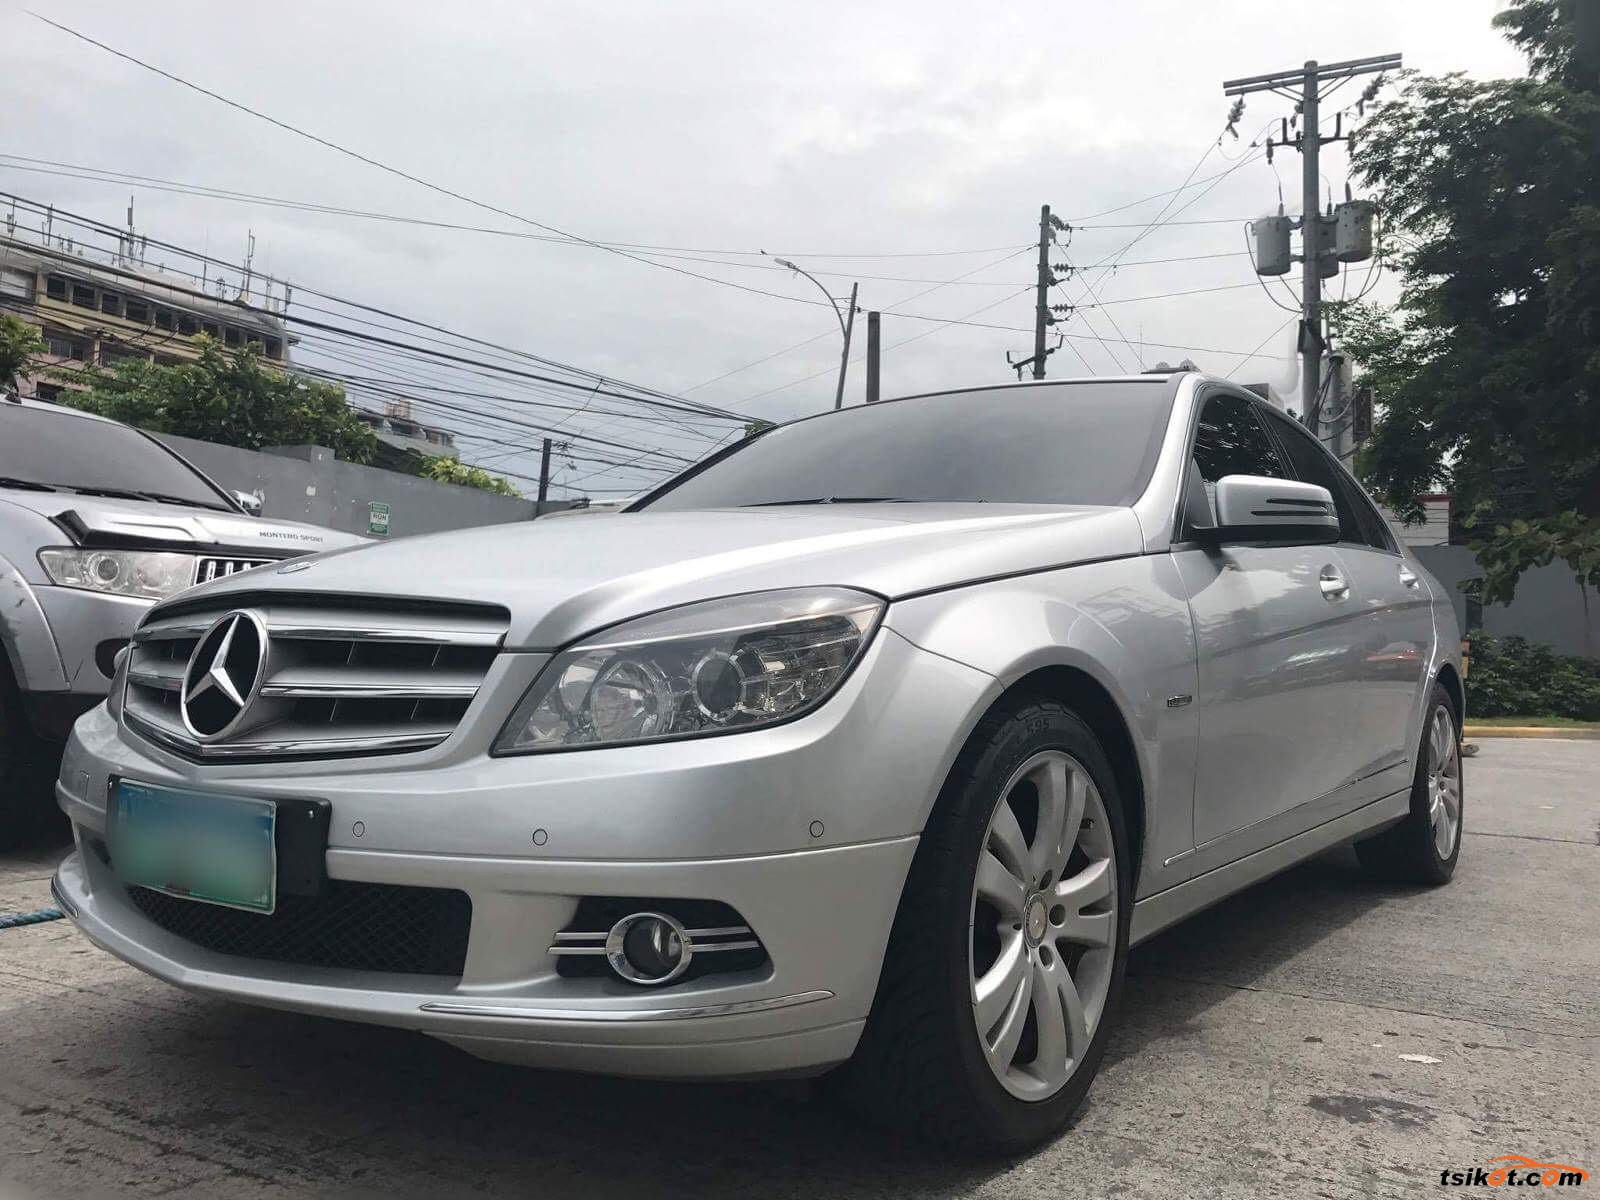 Mercedes benz c class 2010 car for sale metro manila for Mercedes benz price philippines